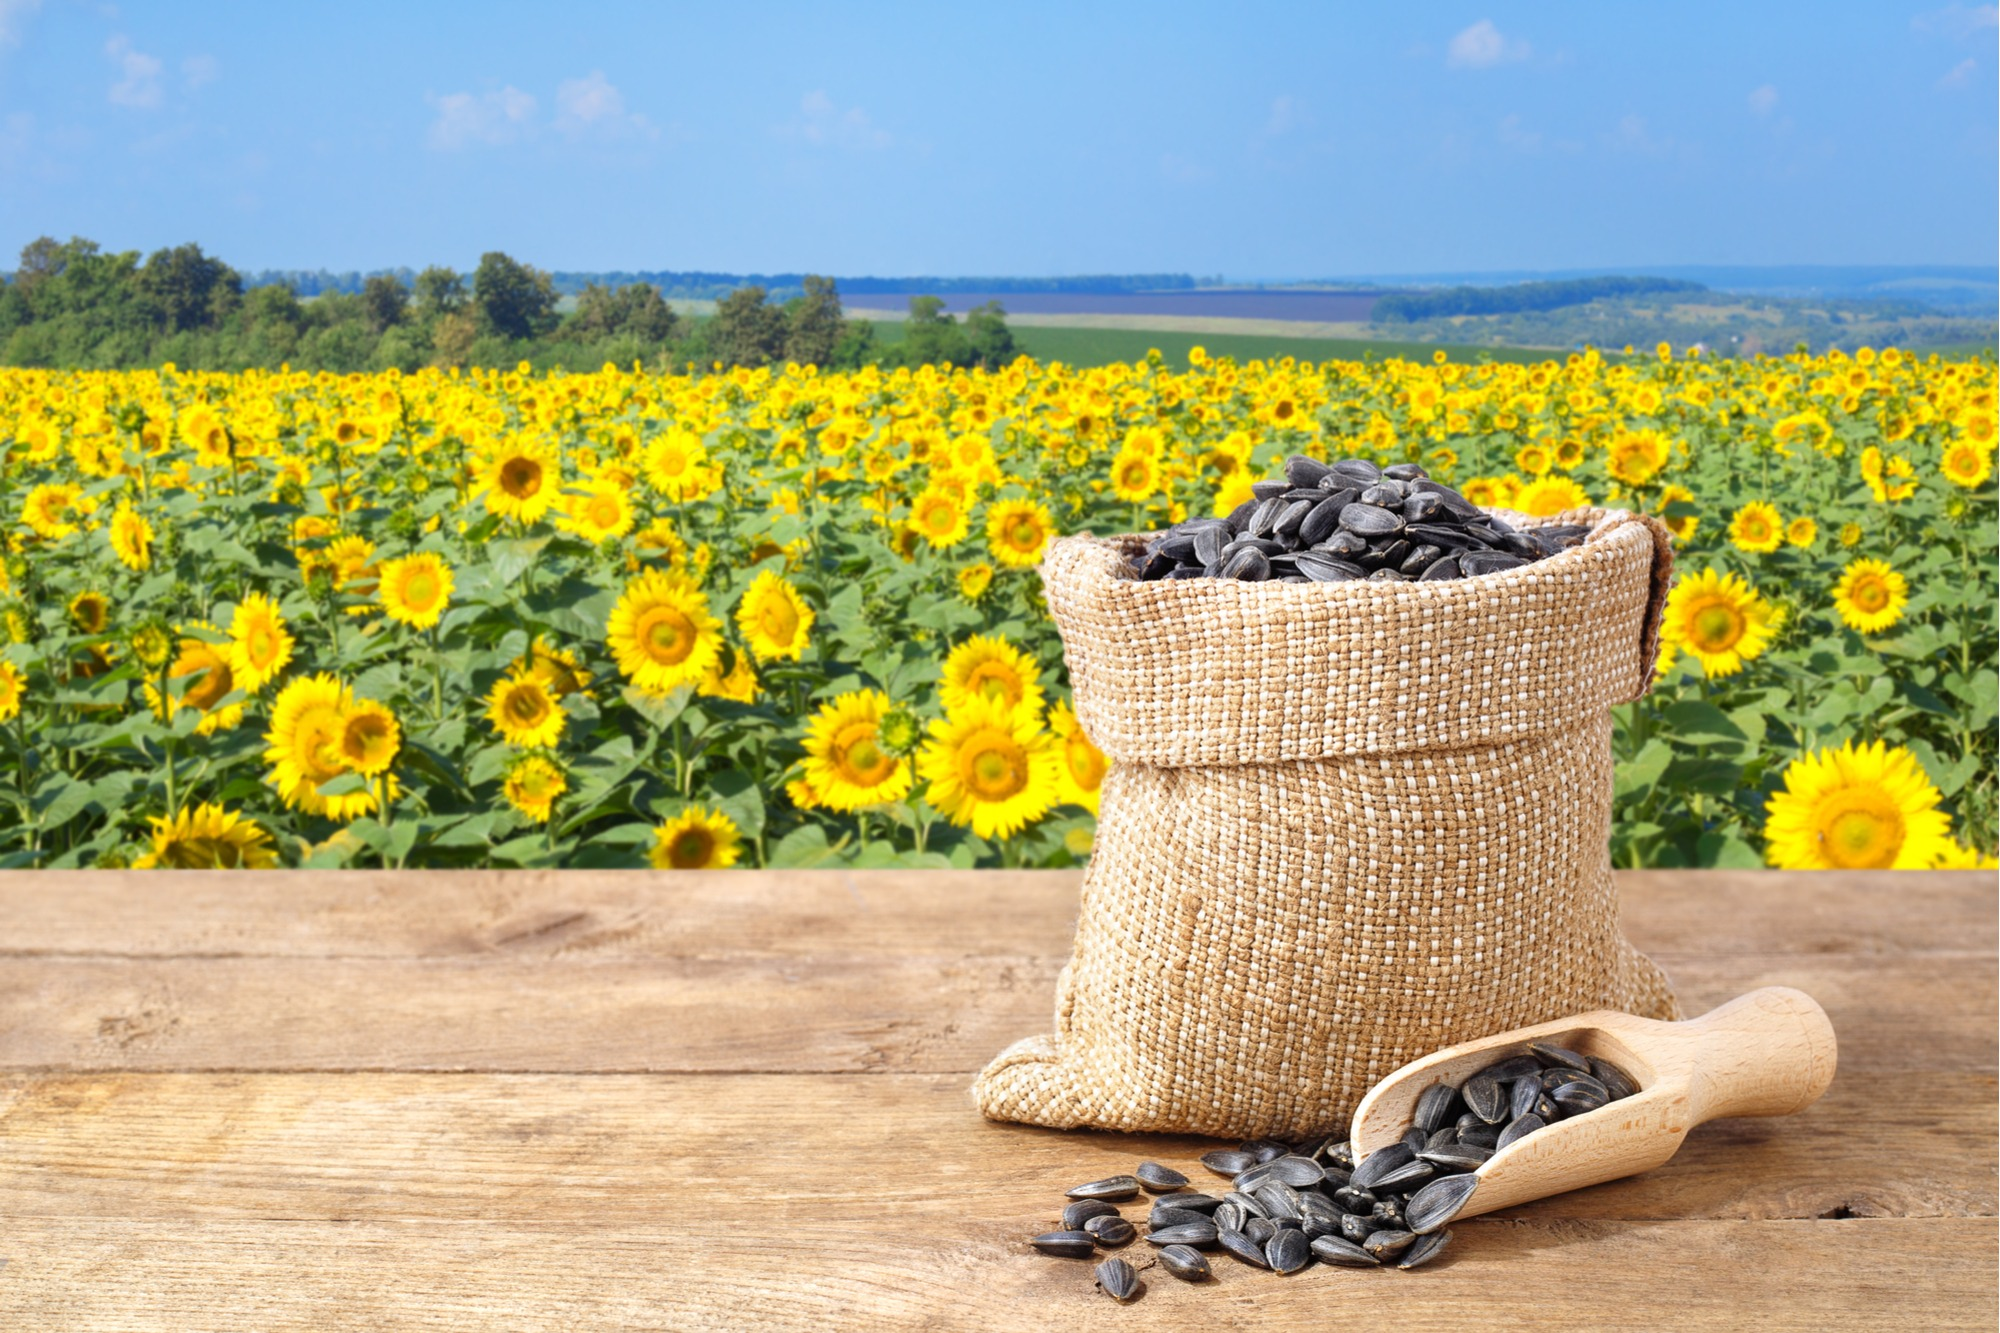 Black seeds are used to make oil and snacks are made out of striped seeds.